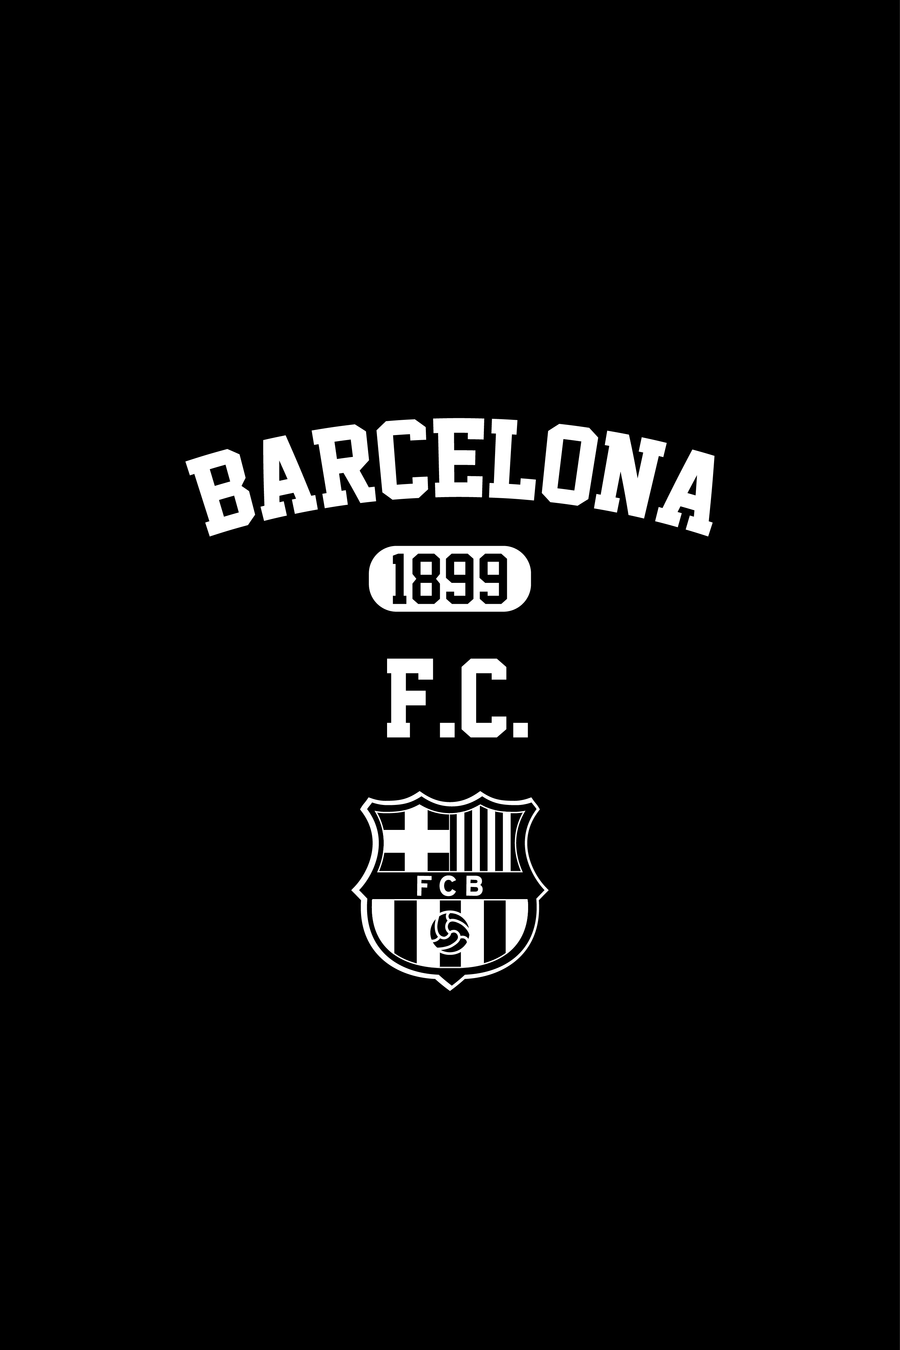 Wallpaper iphone barcelona - Fc Barcelona Retro Barcelona Footballiphone Wallpapersneymar